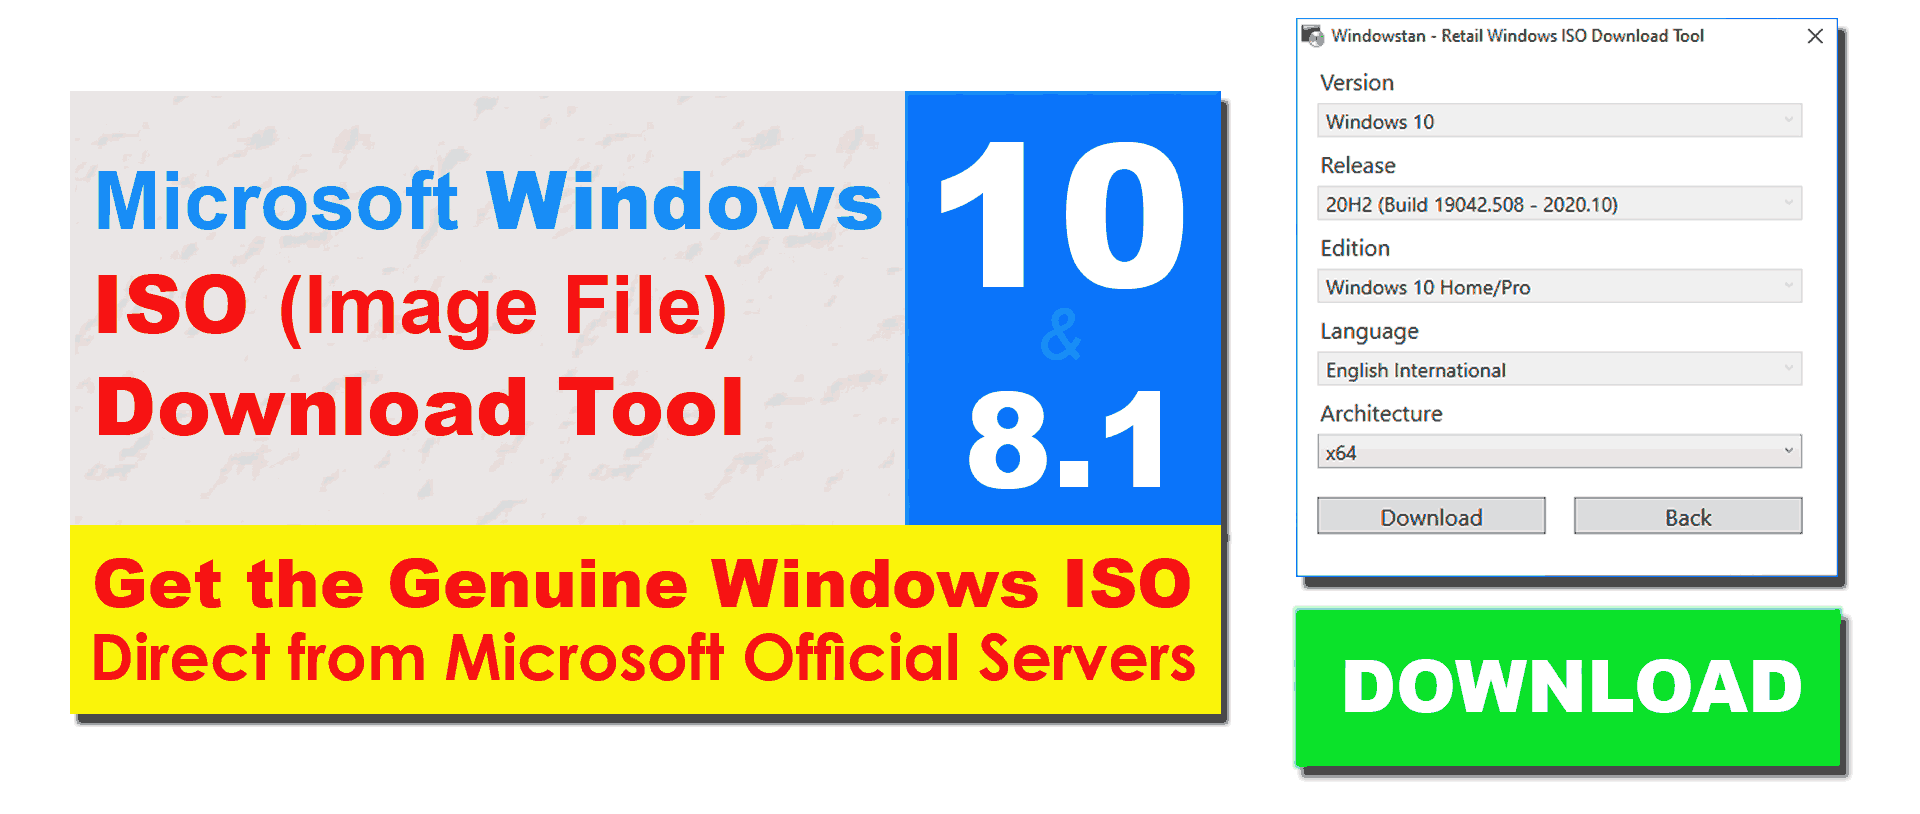 ISO-Download-Tool-for-Windows-10-ISO